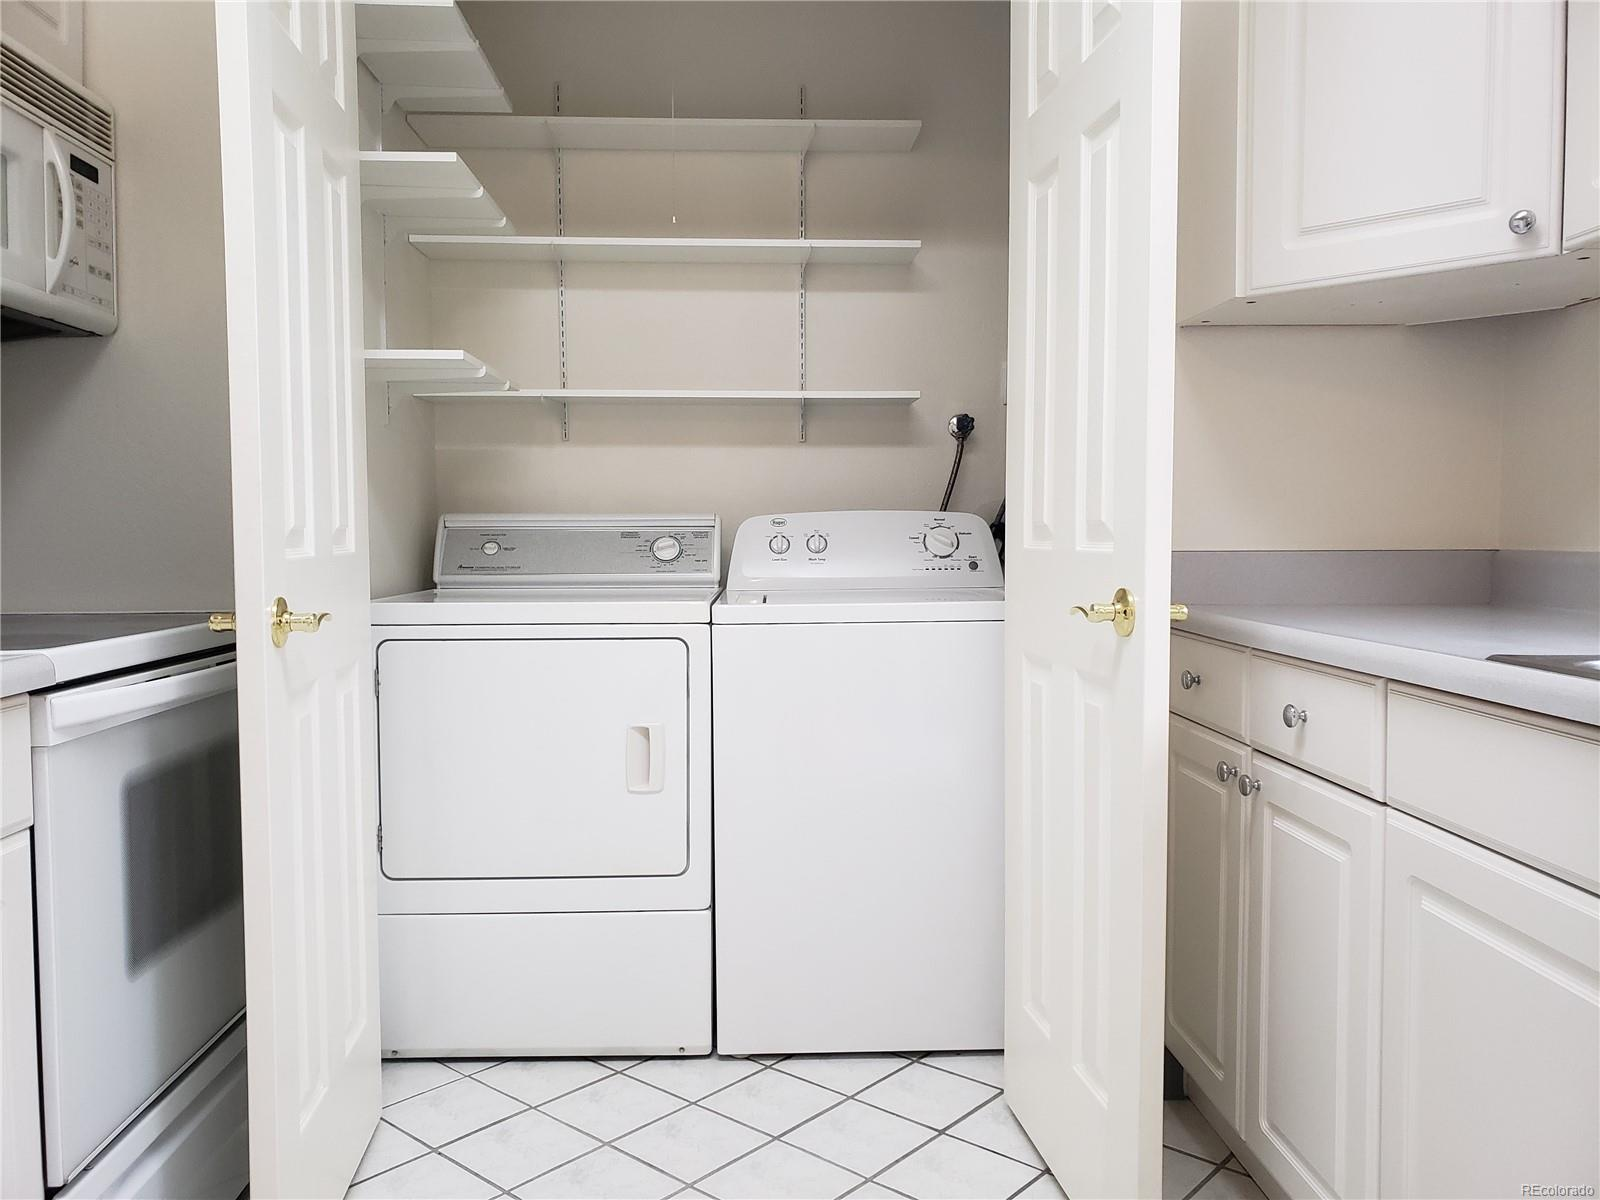 laundry and pantry area in the kitchen/ washer dryer included